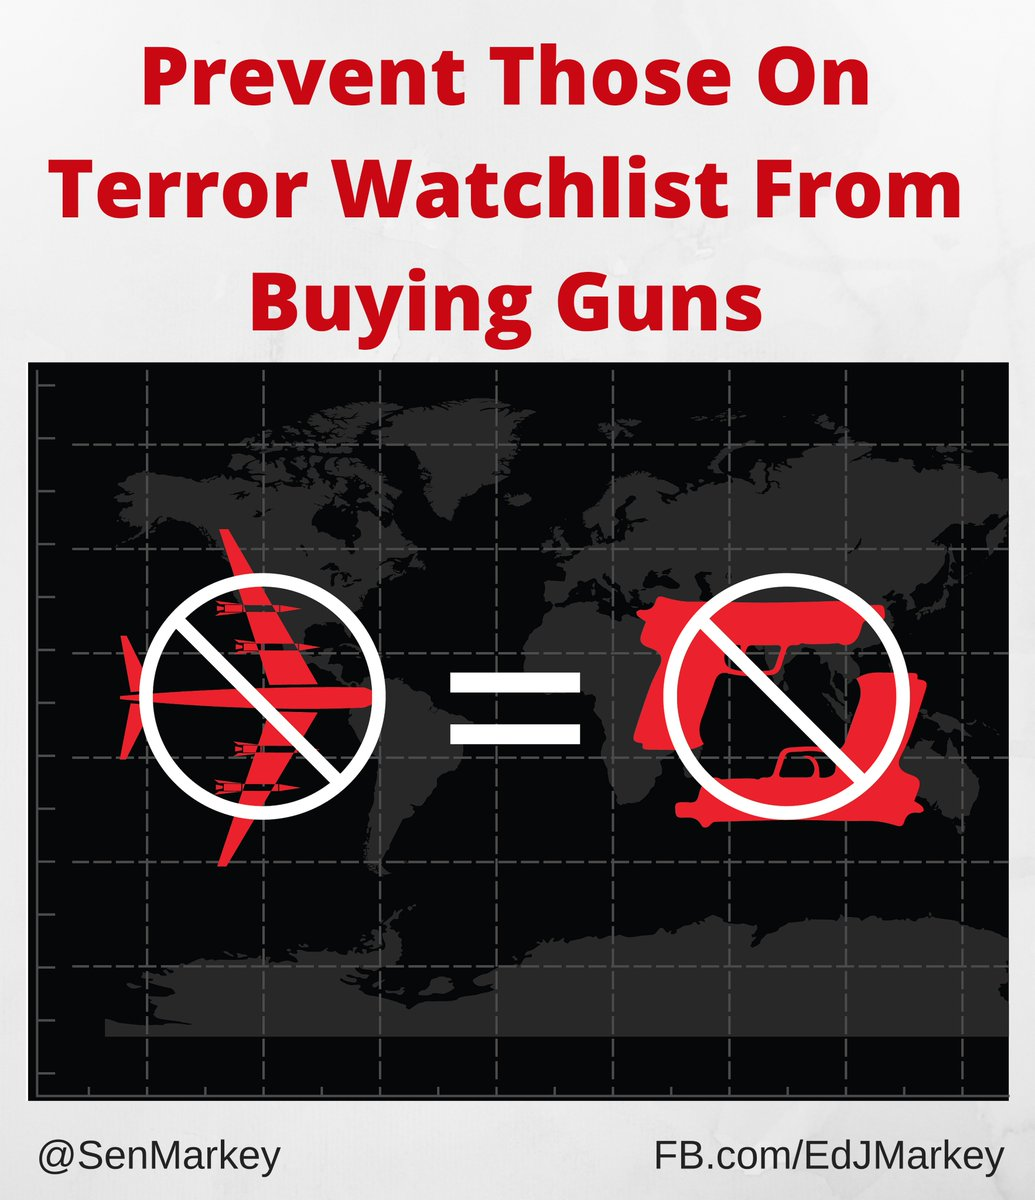 #ENOUGH. It's commonsense to prevent those on terror watchlist from buying guns. #filibuster https://t.co/L2EeQxSOya